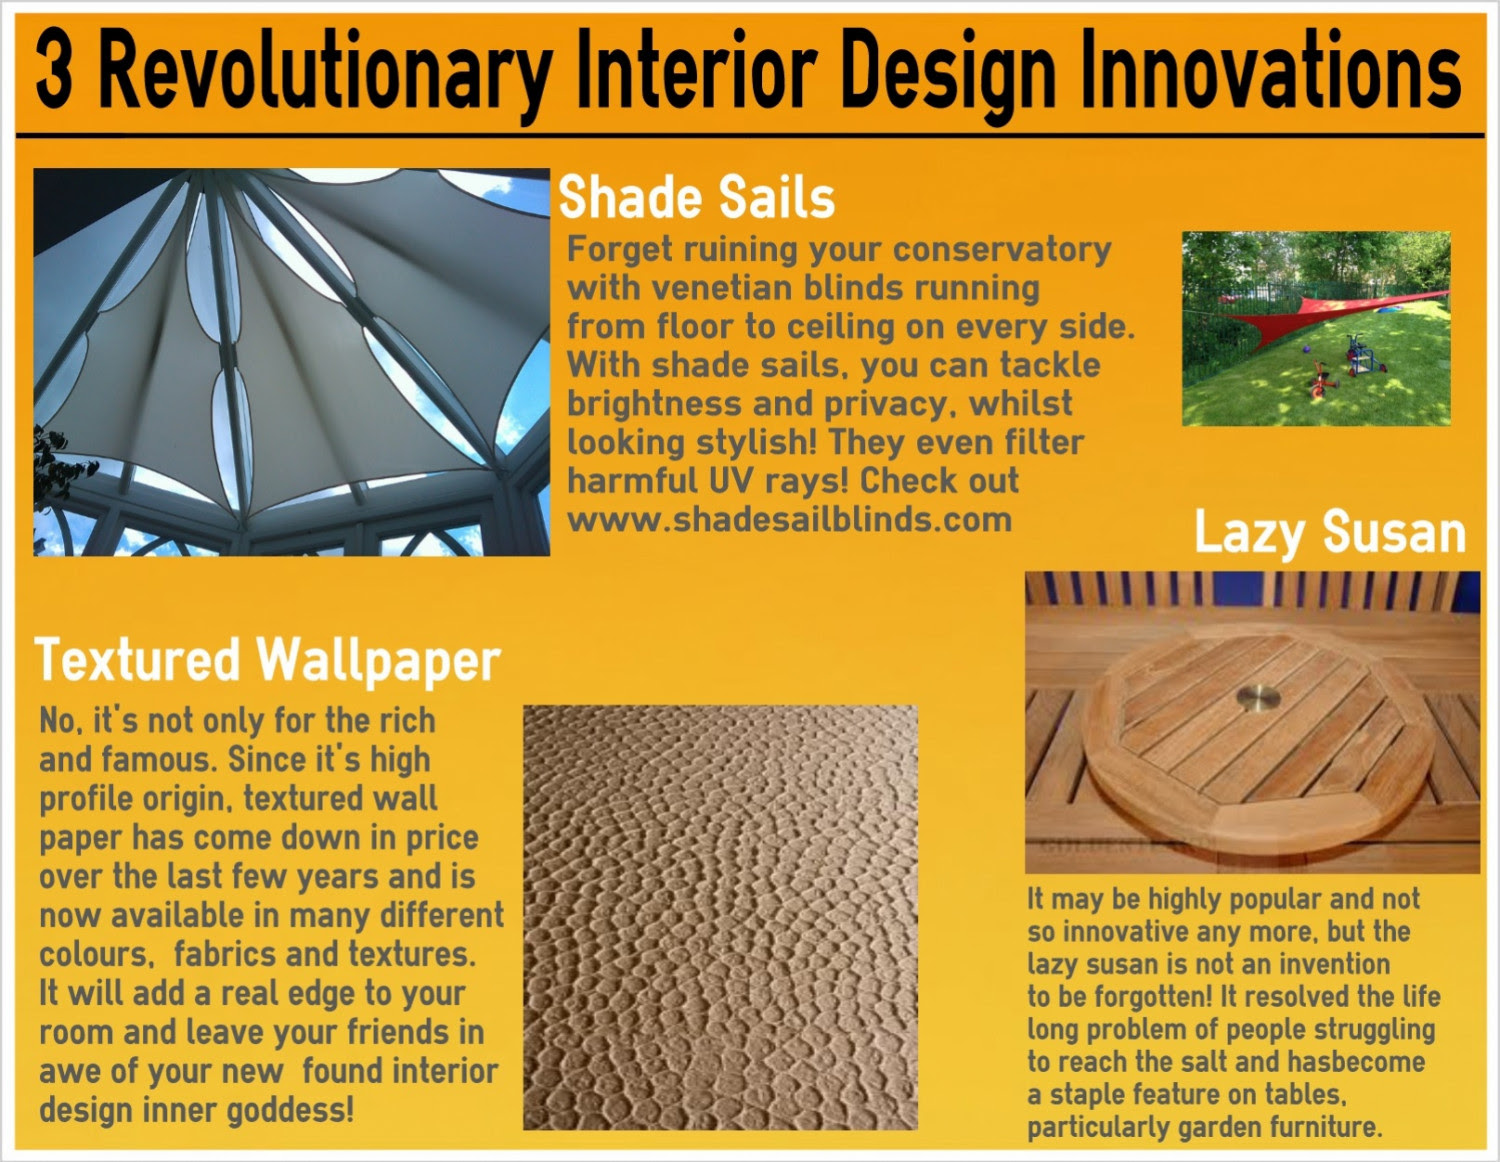 Revolutionary Interior Design Products | Visual.